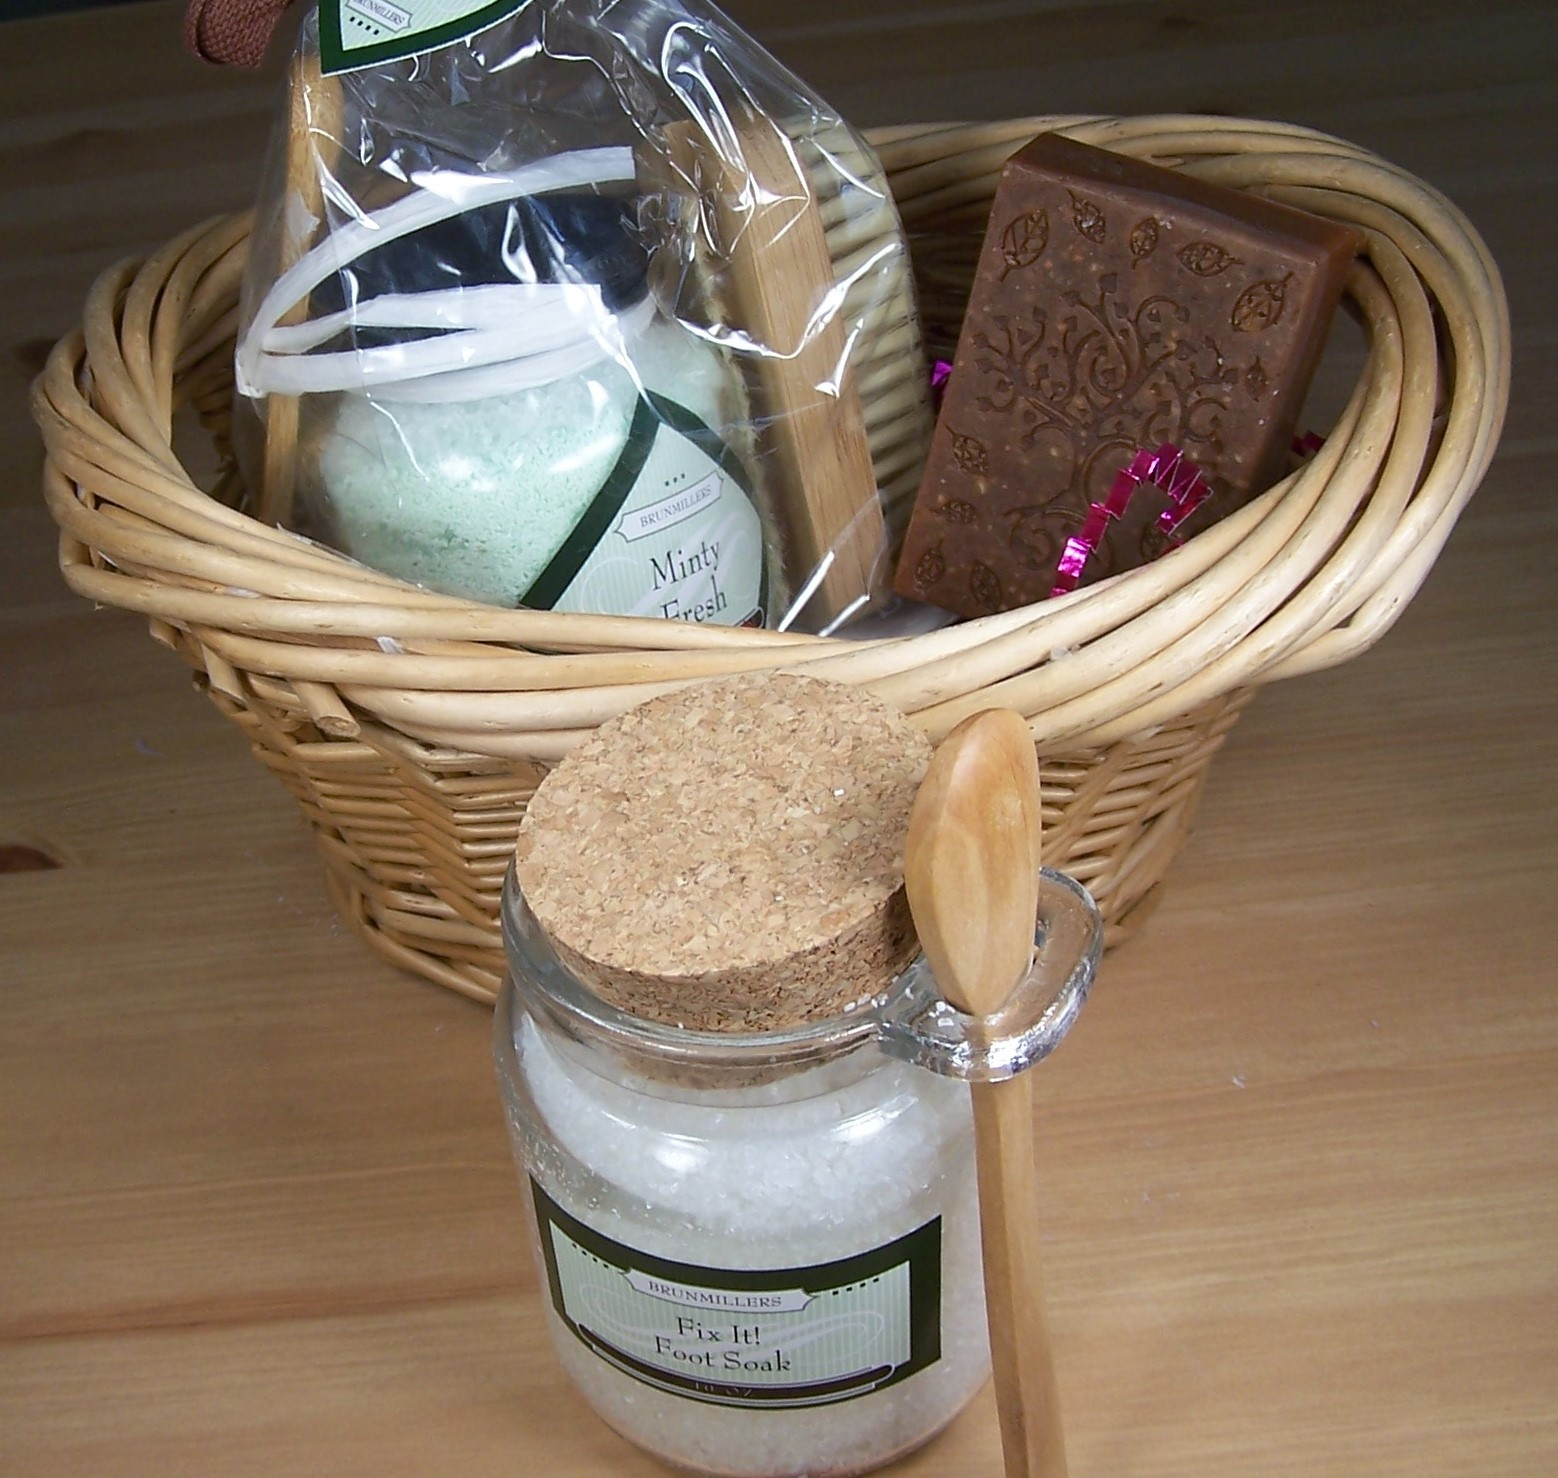 Spa Kit: Soap, Foot Soak or Bath Fizzy Salts, and Nail Brush